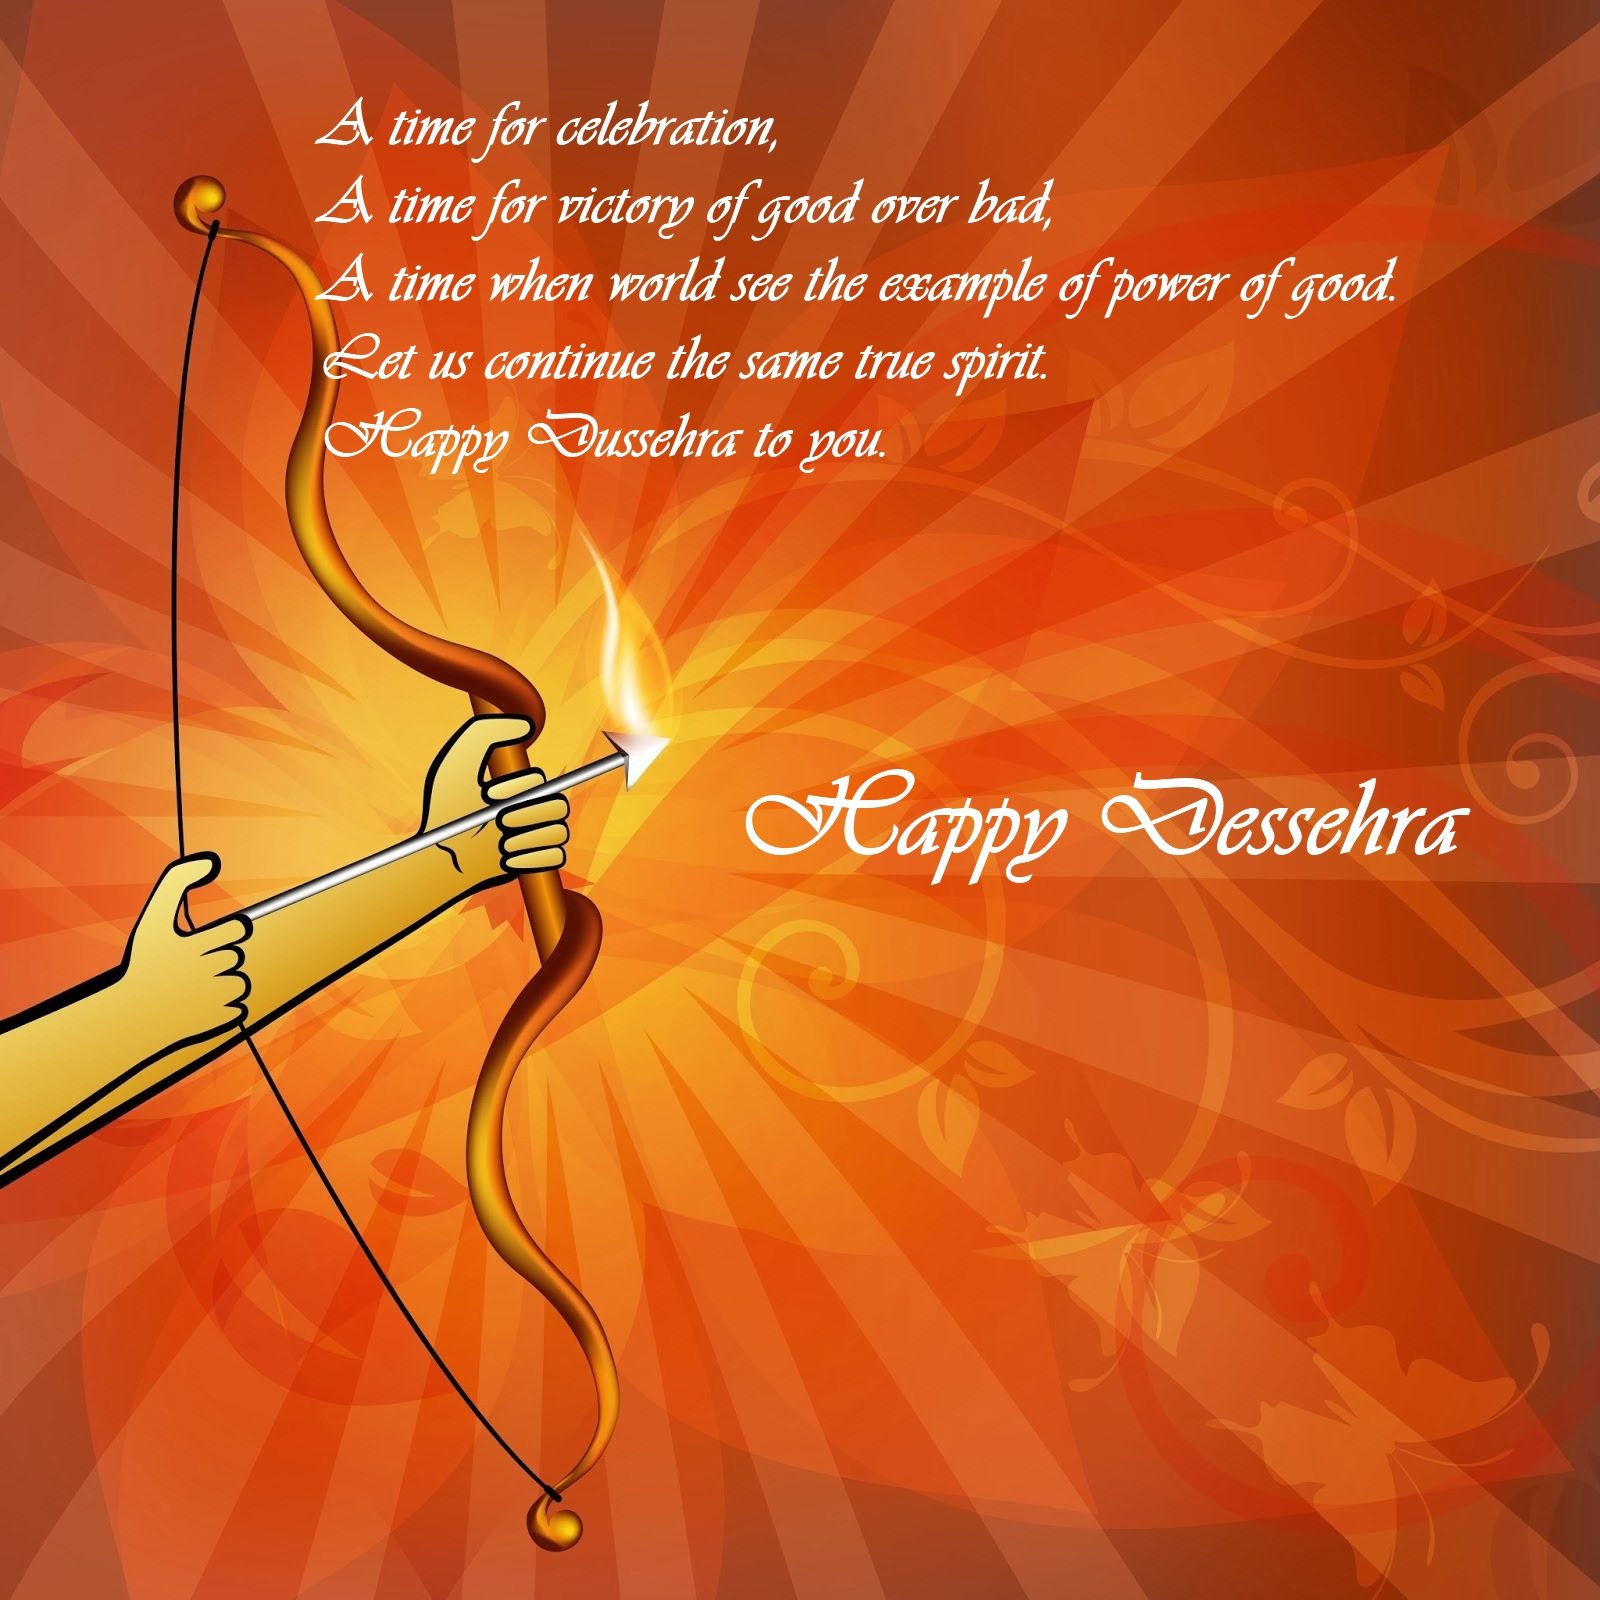 Dussehra sms quotes messages wallpaper wishes hamara hindustan dussehra quotes wallpaper greetings dussehra messages m4hsunfo